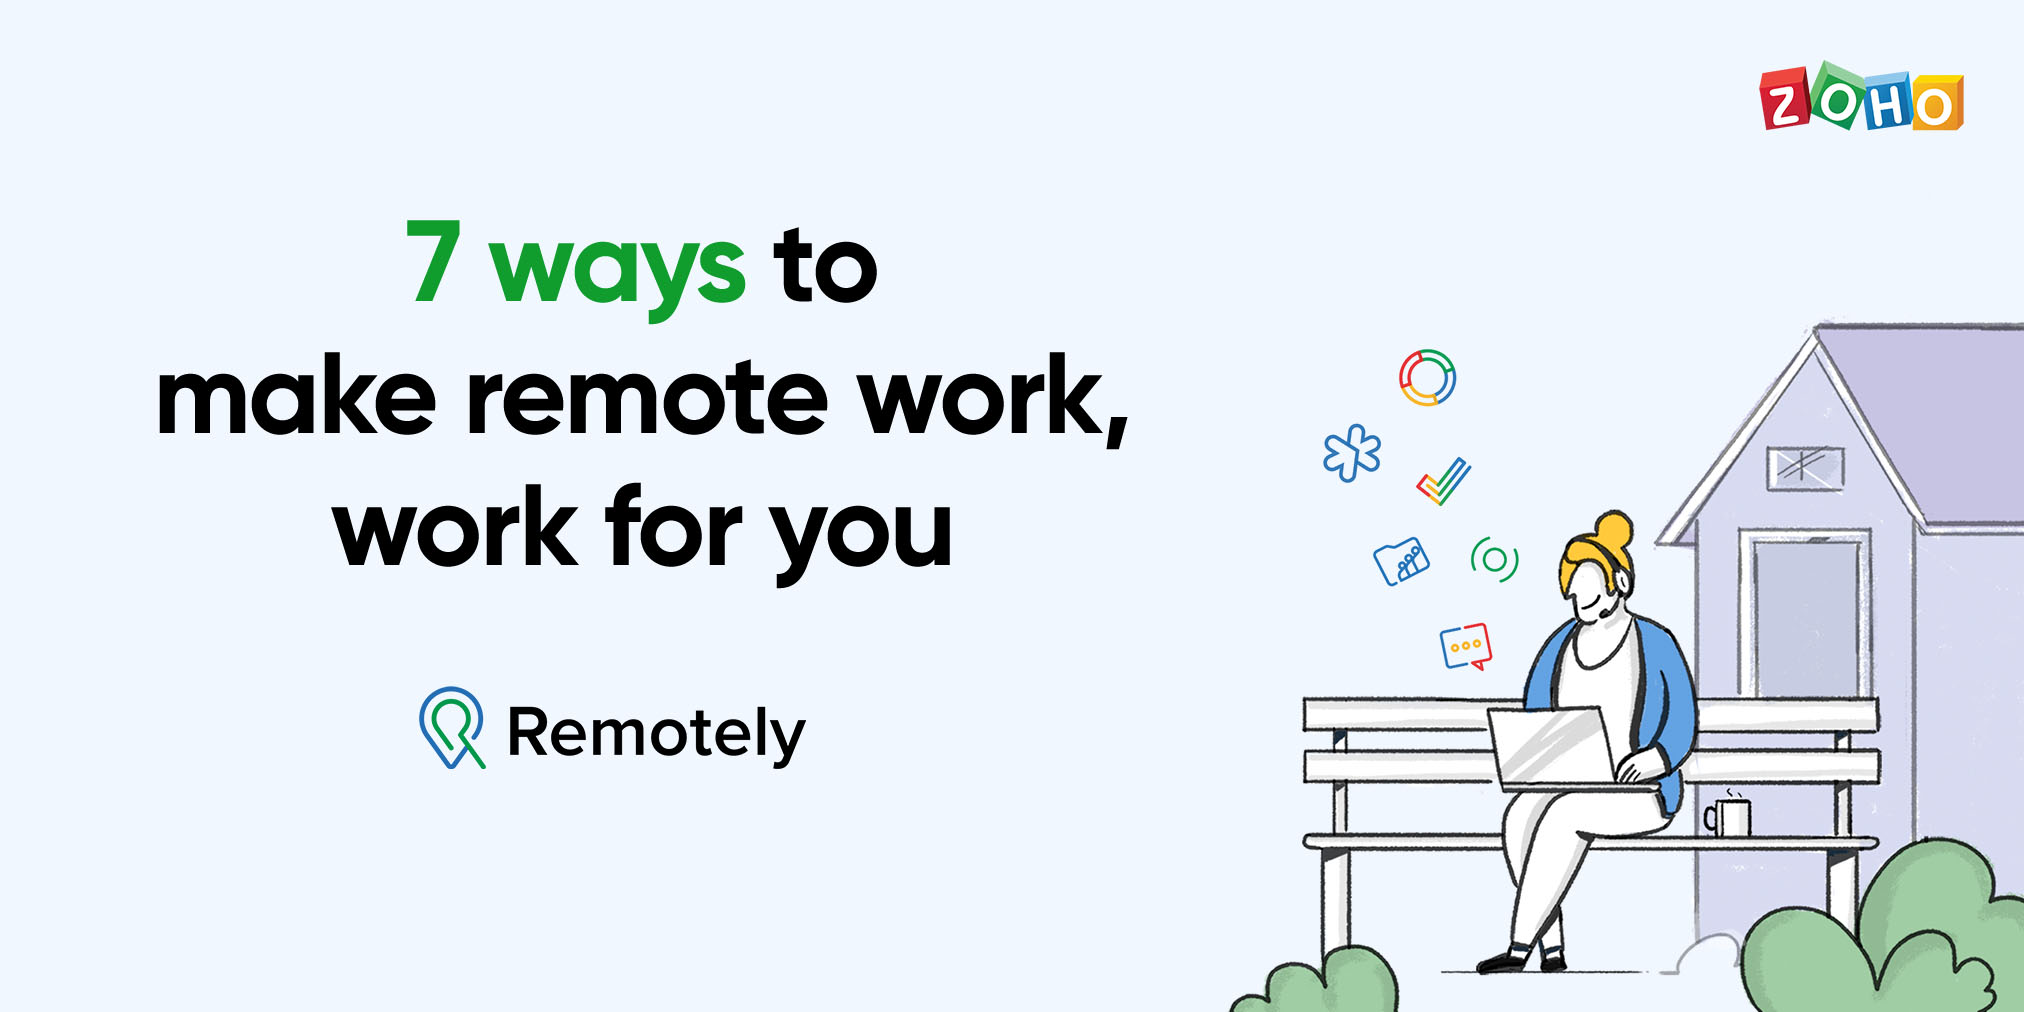 How do I become remote work ready? Some of our experts share their tips, best practices, and stories.